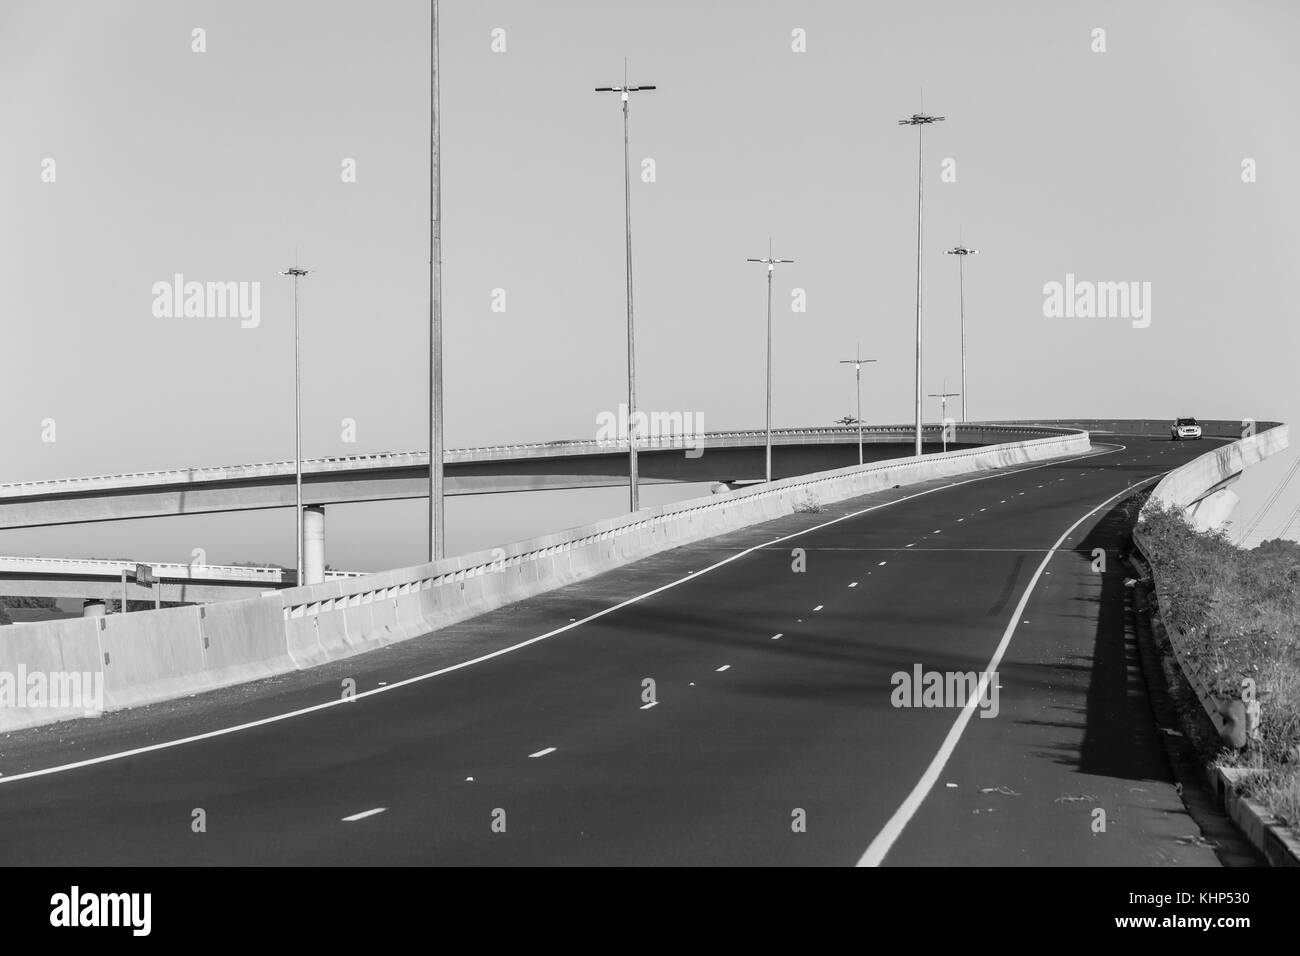 Road highway overhead flyover ramp entry exit structures in black and white. - Stock Image